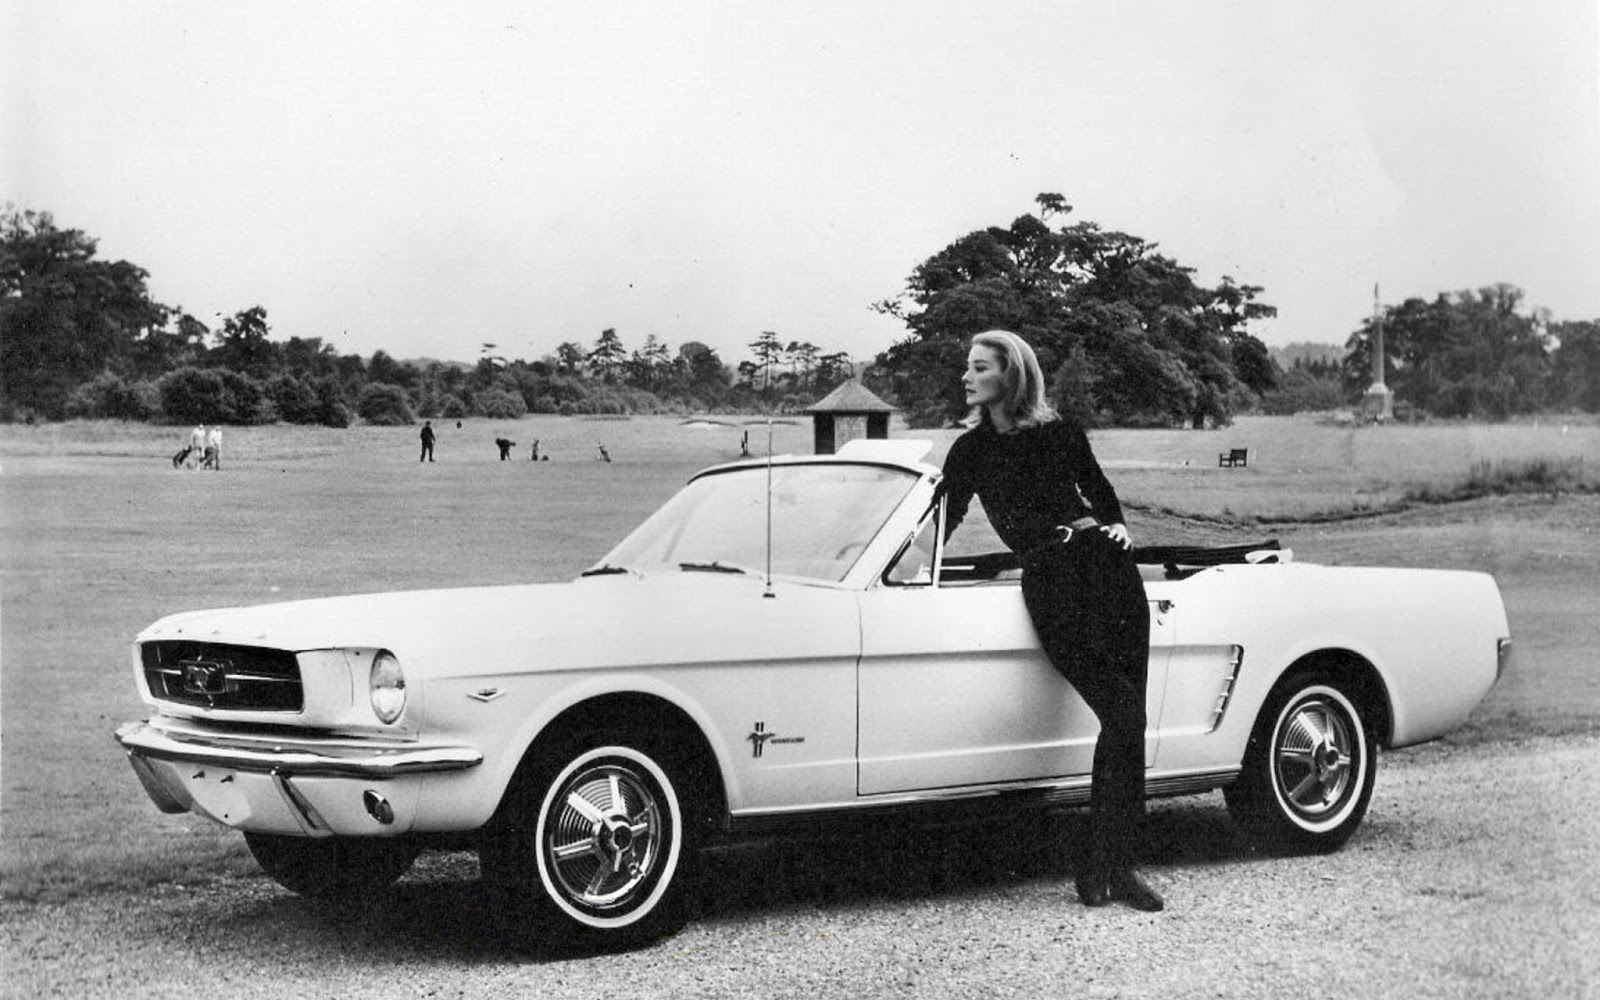 "Tilly Masterson's Ford Mustang was supposedly the first appearance by a Mustang in a major motion picture. The Mustang was introduced in April of 1964 and ""Goldfinger"" was released in December. Ford supplied many cars to the film including the CIA agents' Thunderbird, all of Goldfinger's goons cars, and the Lincoln Continental that is crushed."